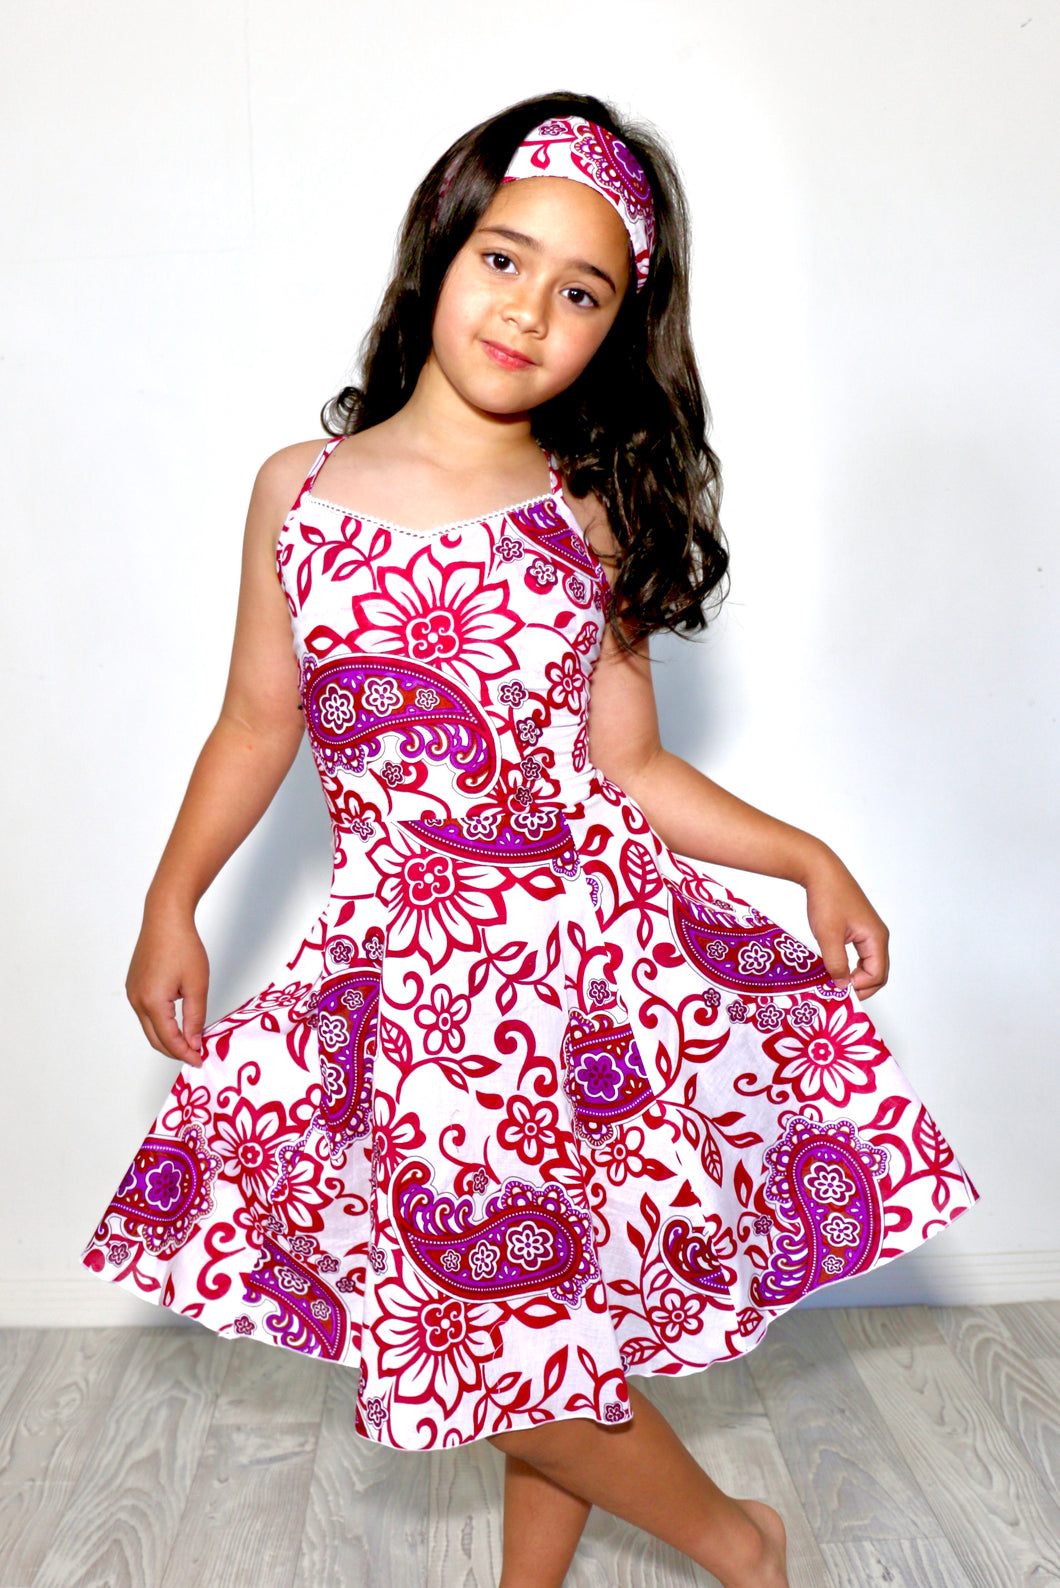 Firefly criss-cross backed dress with matching headband